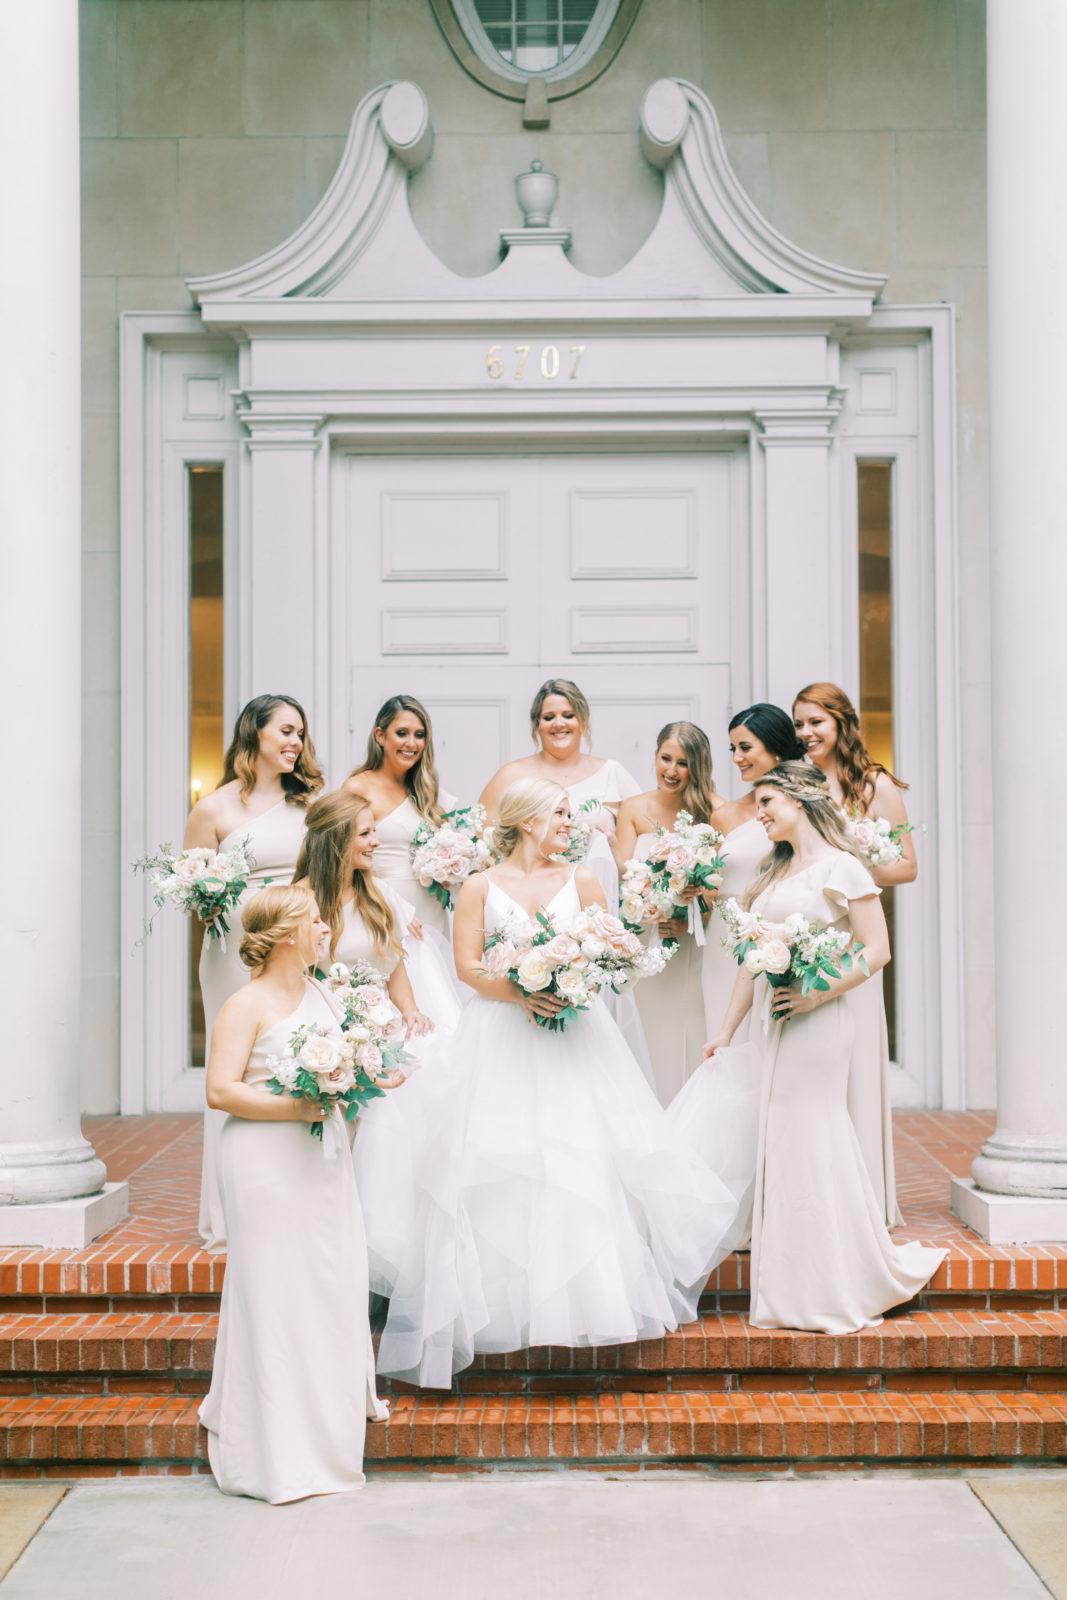 Neutral bridesmaid dresses and wedding bouquets